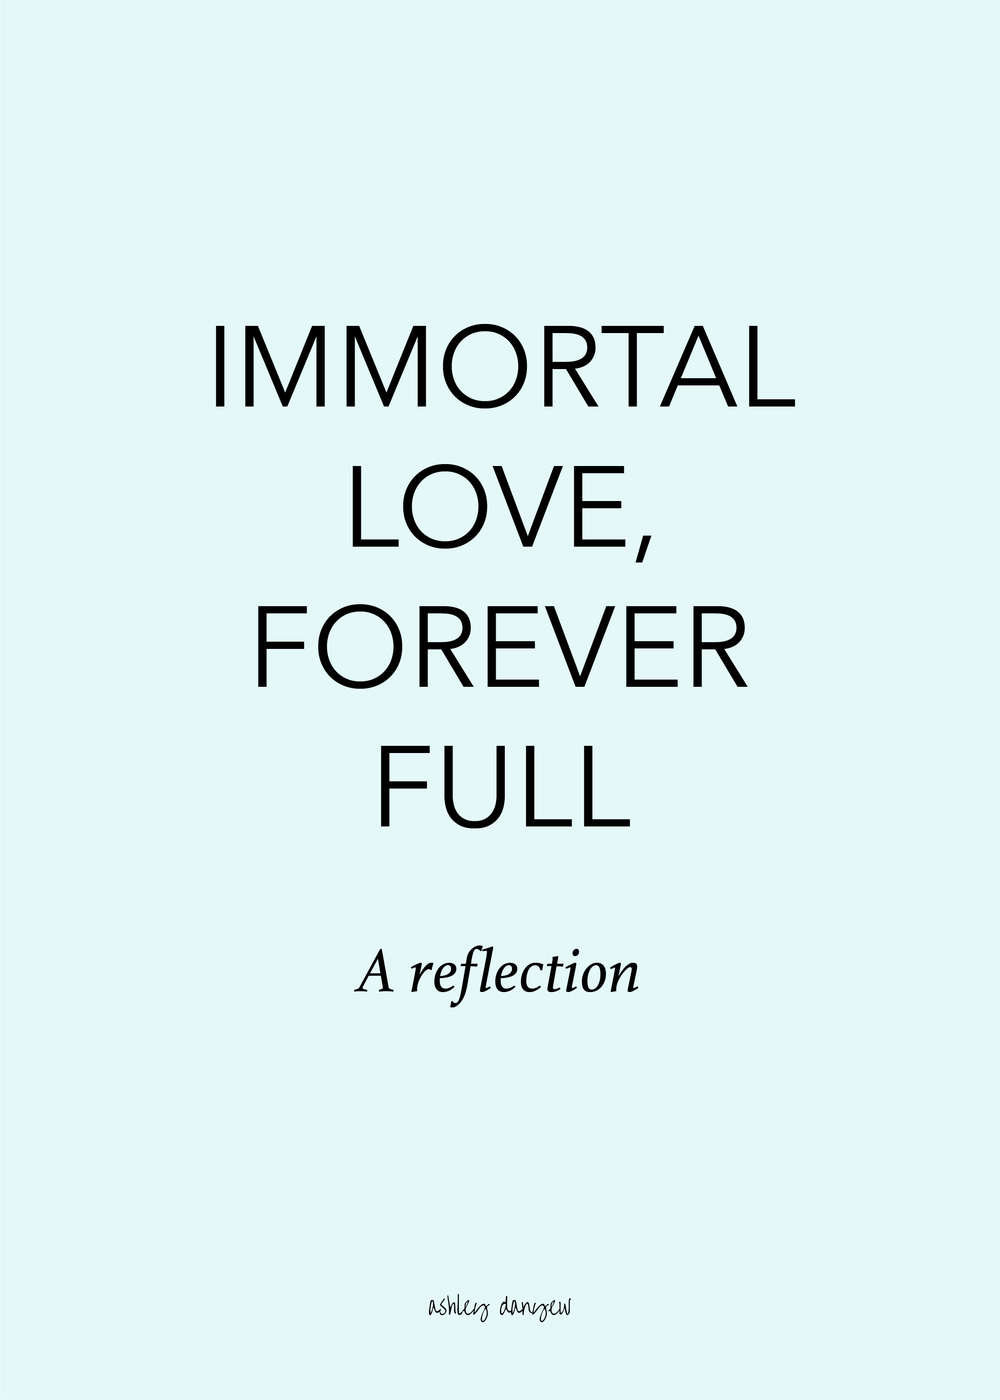 Copy of Immortal Love, Forever Full: A Reflection